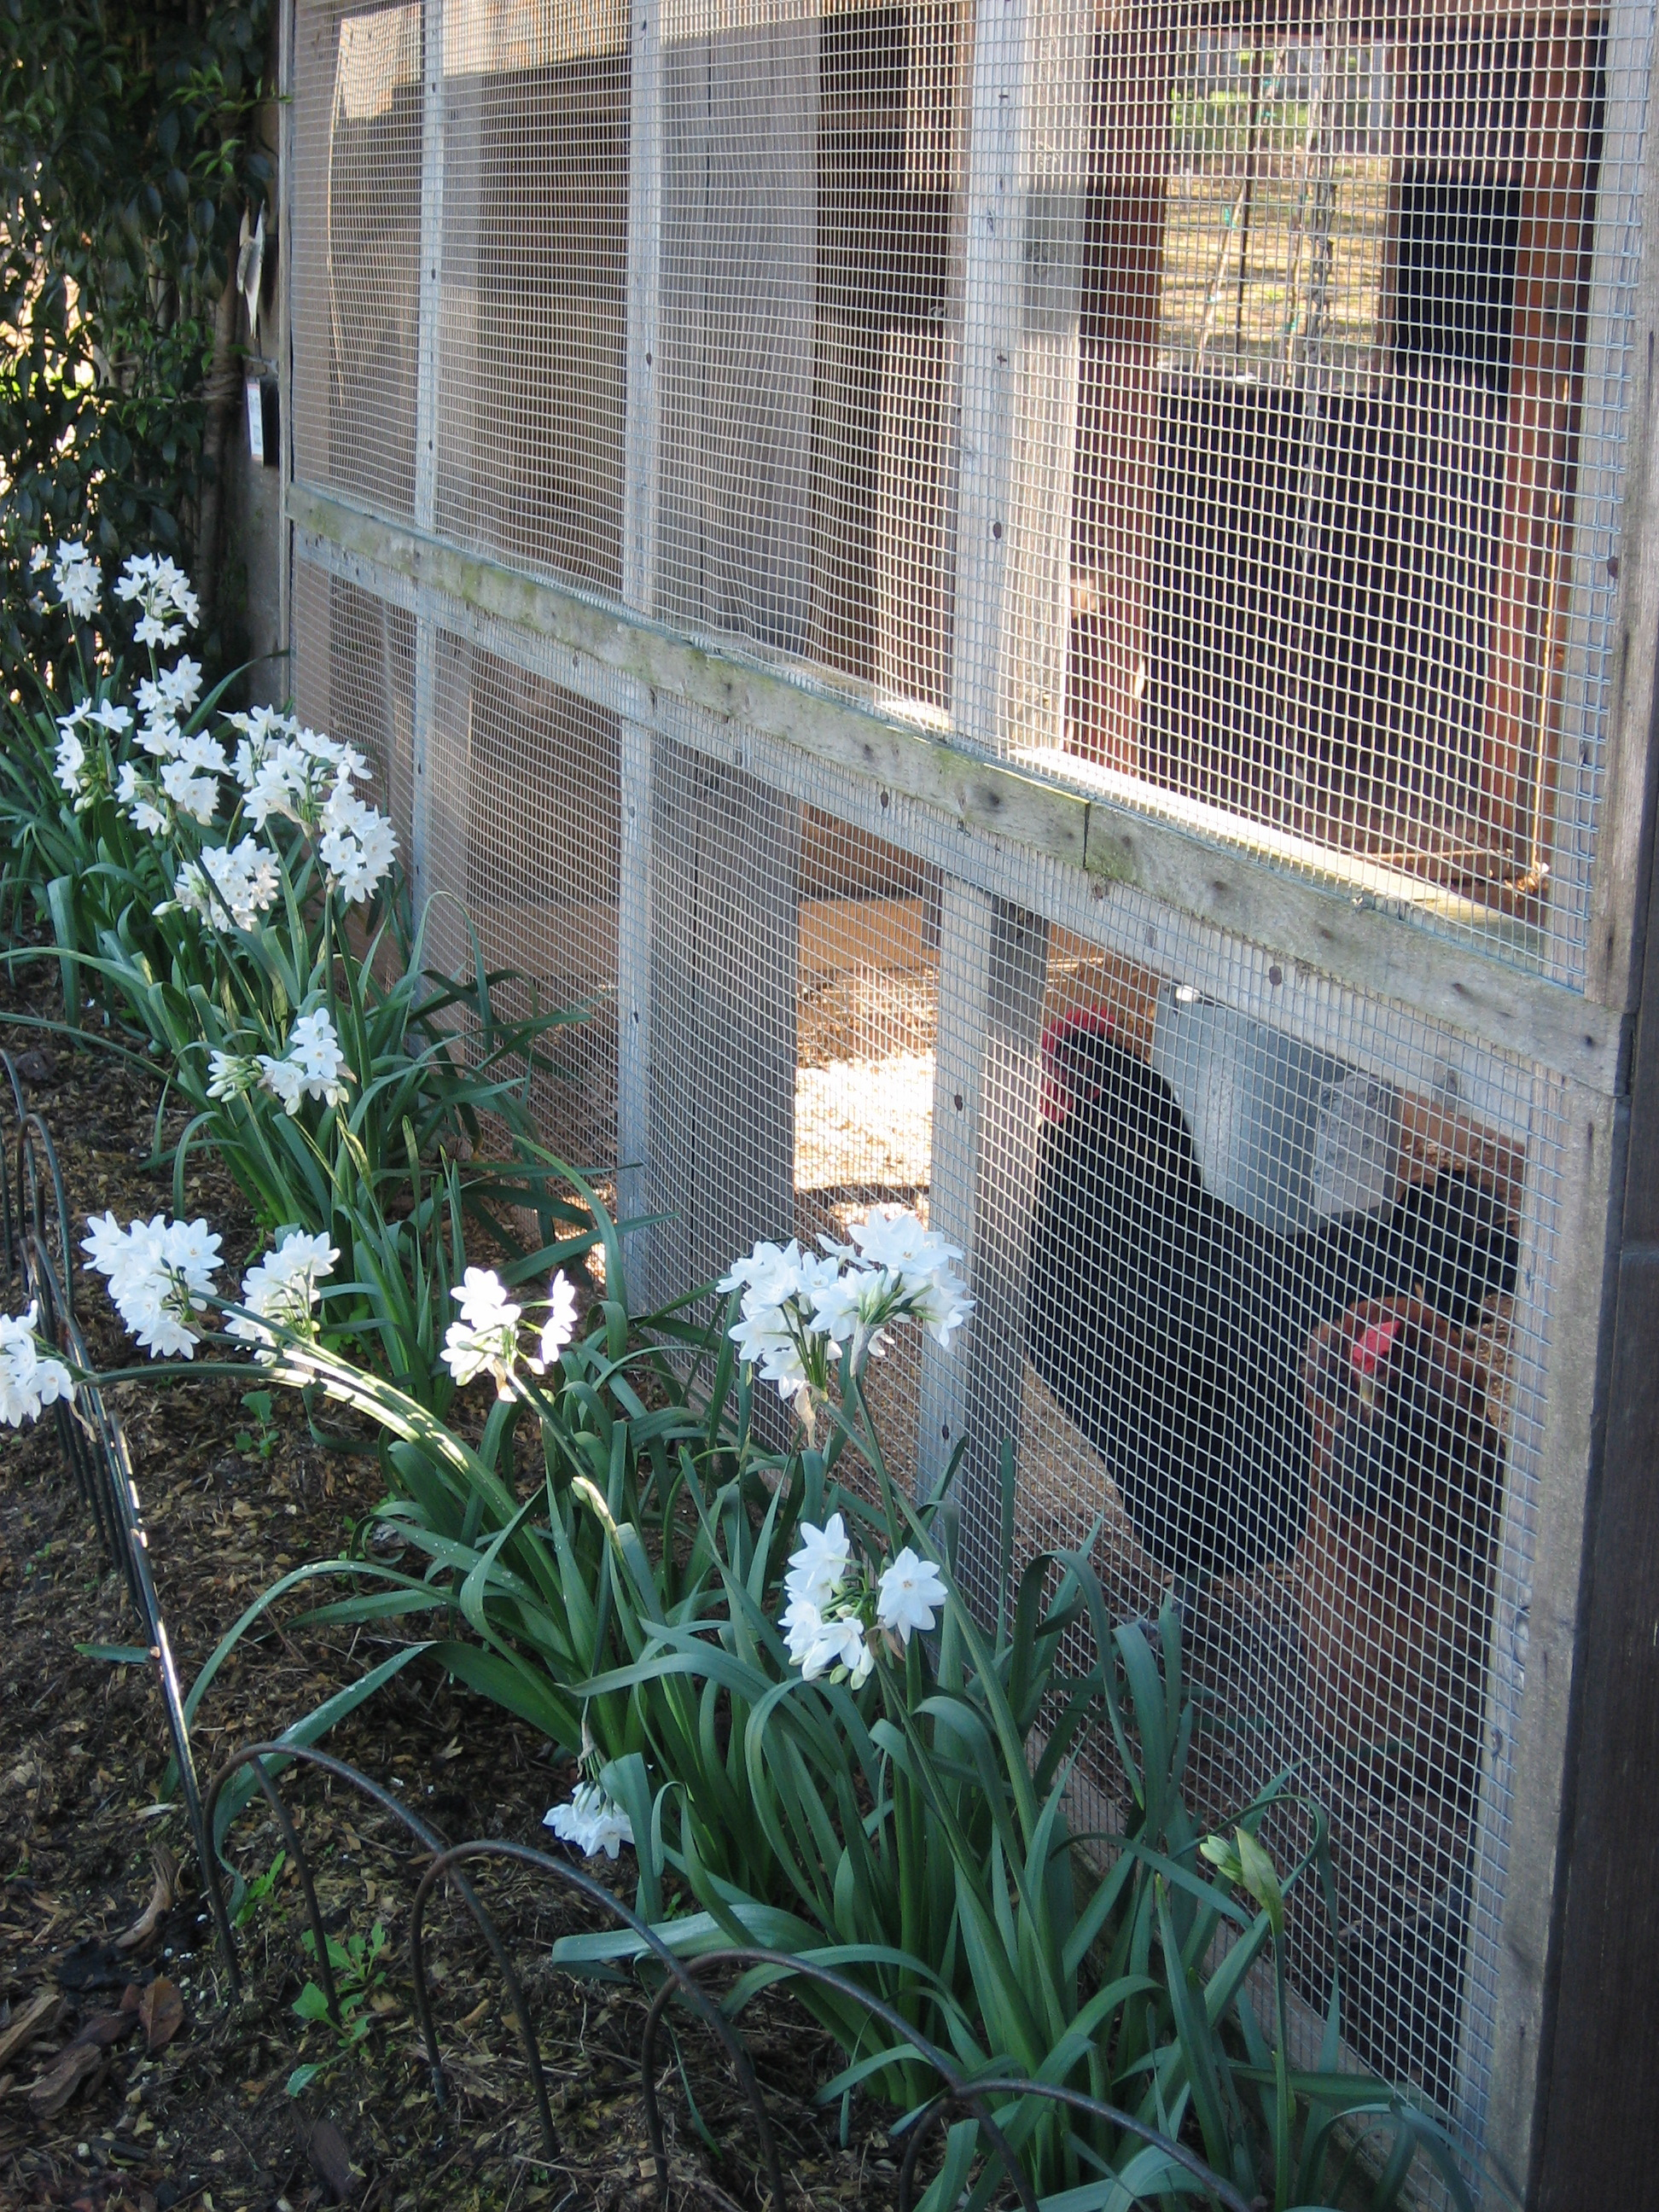 Narcissus Bulbs Blooming Alongside Chicken Coop